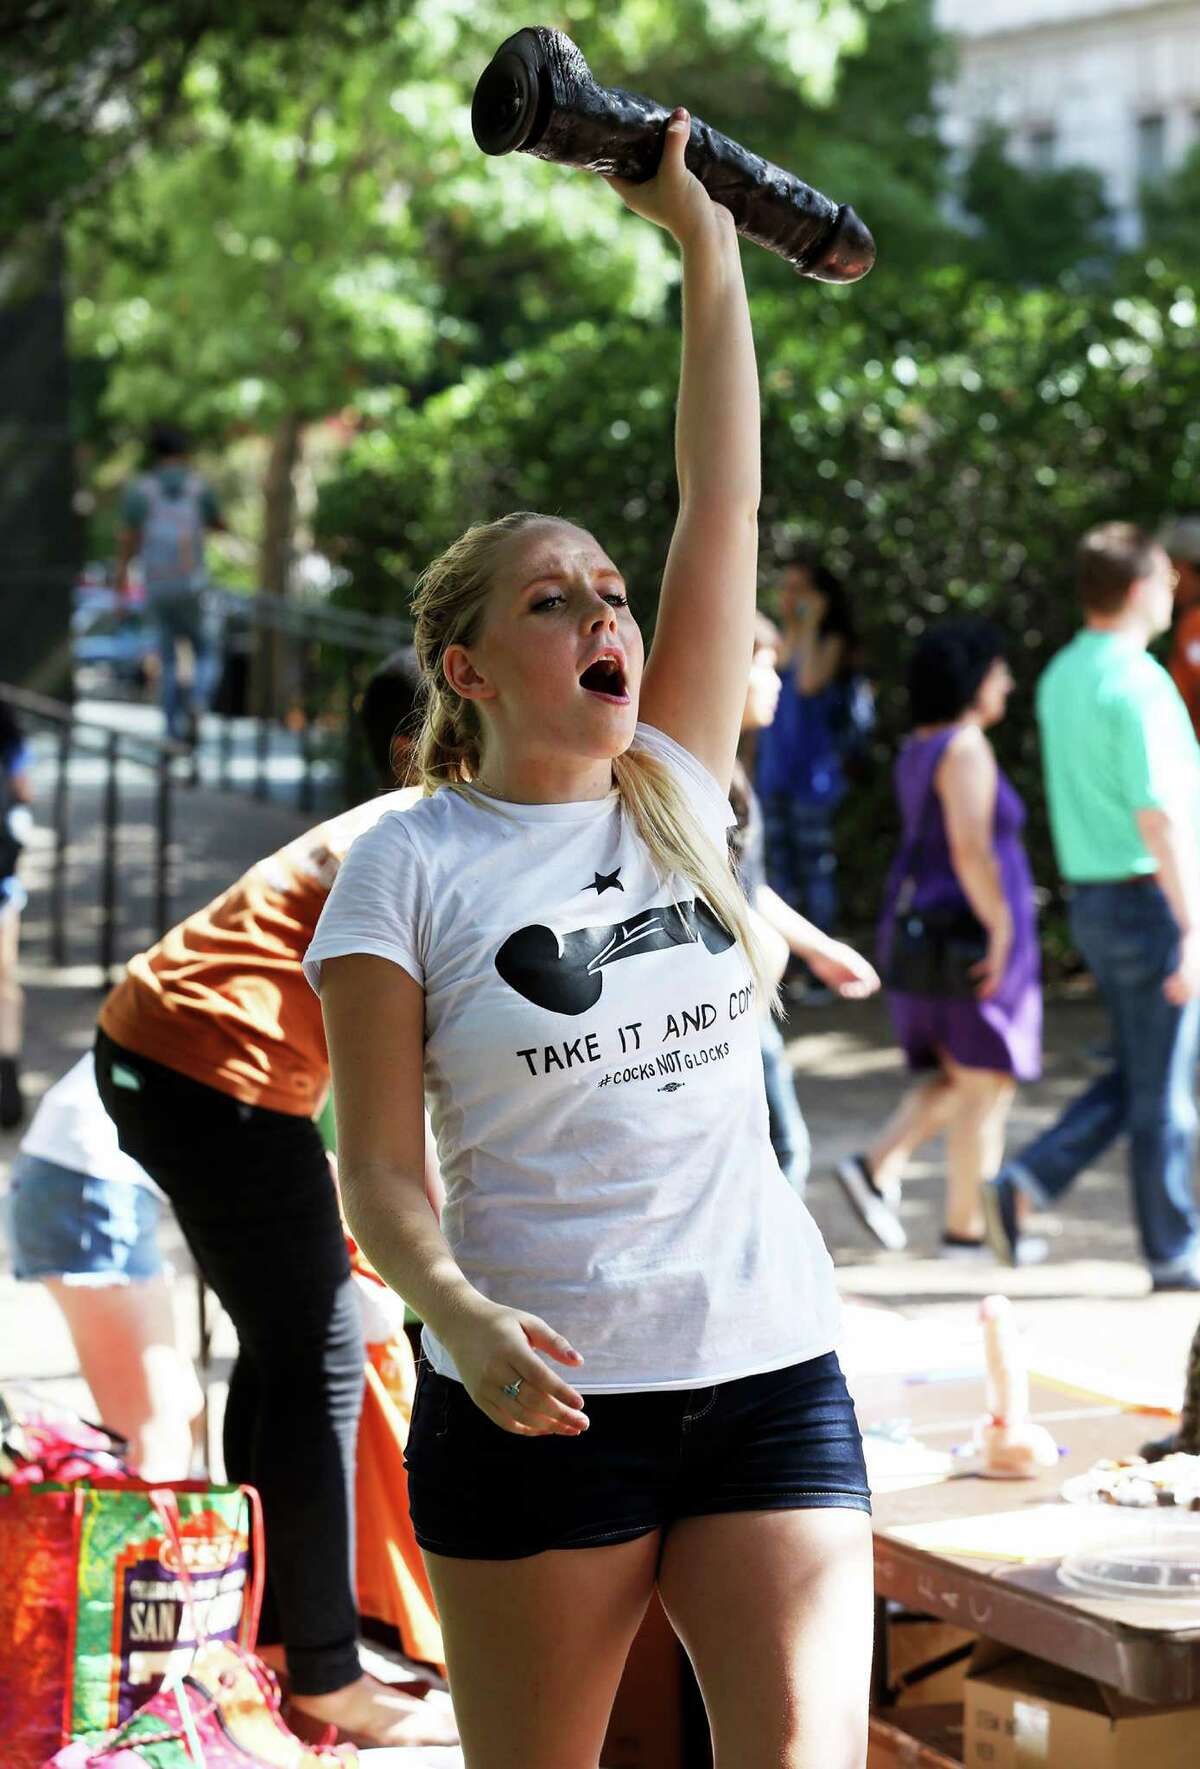 Rosie Zander shouts about a planned anti gun demonstration as students stage a protest against new campus carry rules for firearms on August 24, 2016